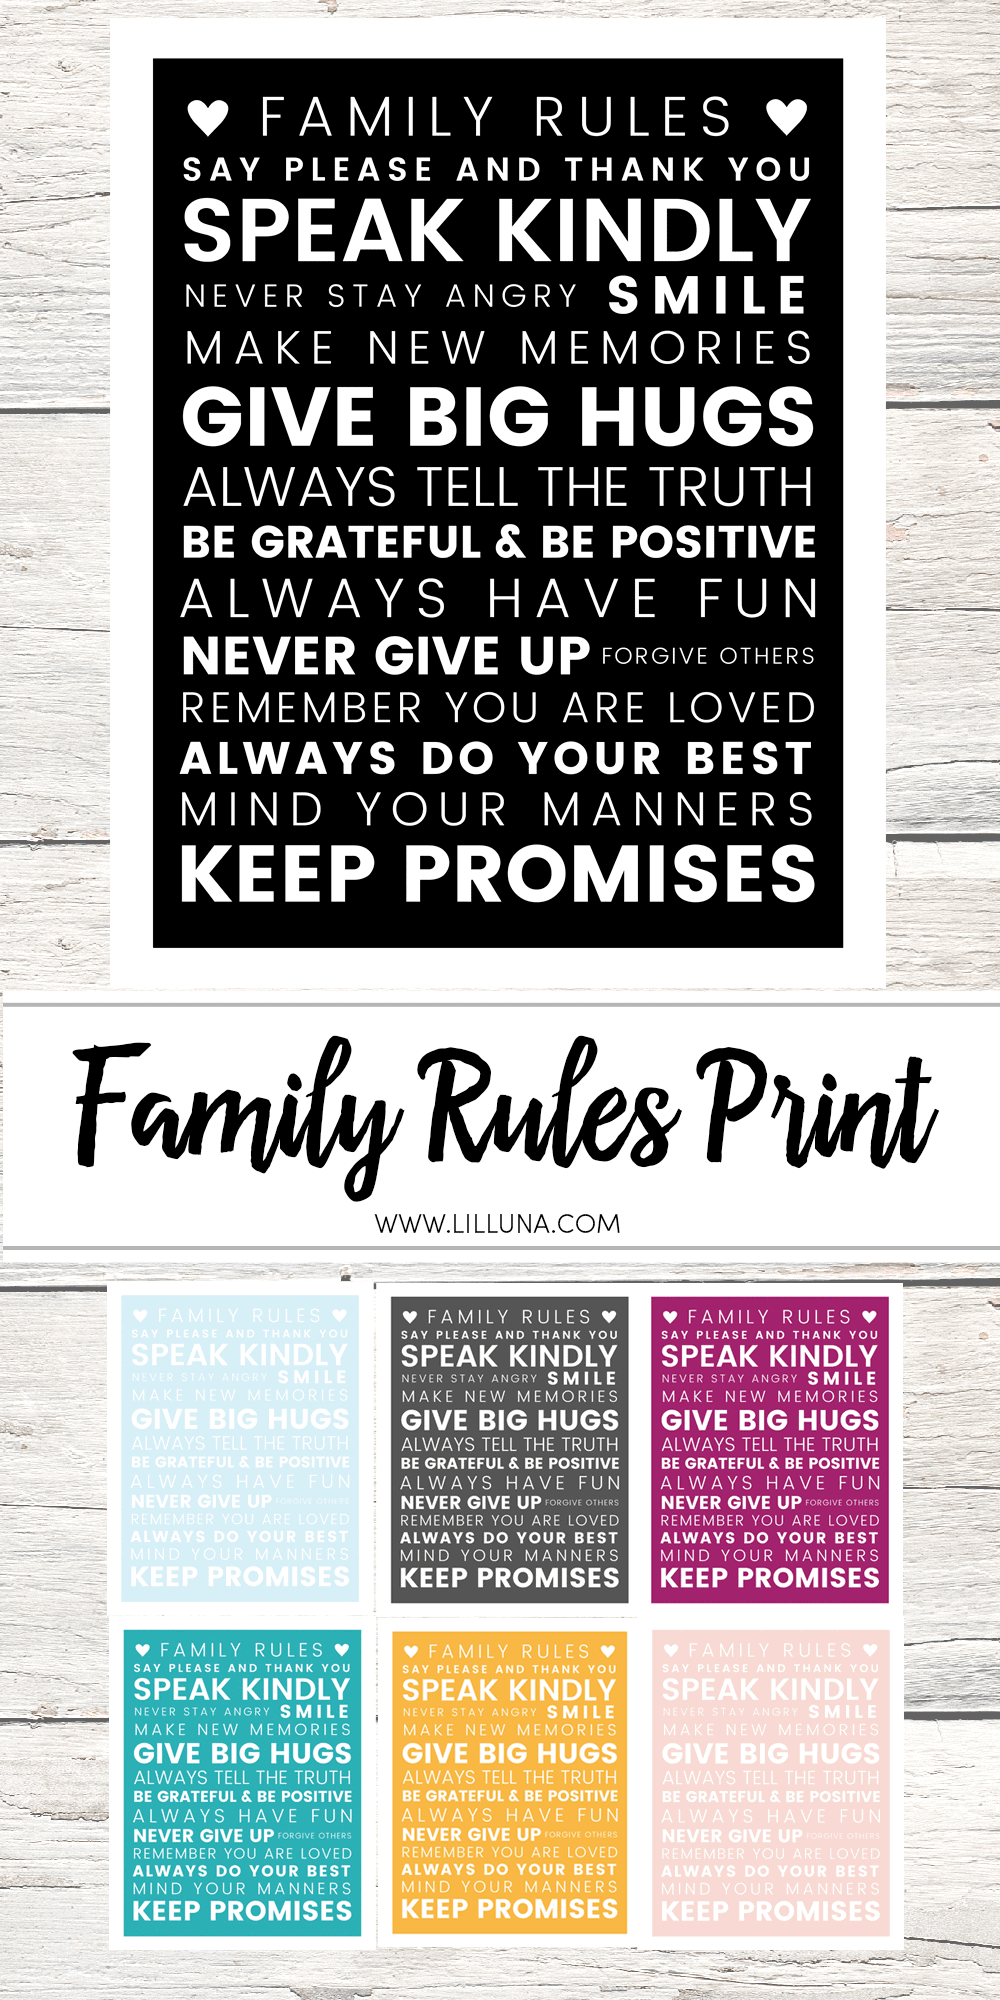 FREE Family Rules Print to download and display in your own home. Also chatting about why HUGS are so important! @Huggies #NoBabyUnhugged #HuggiesCouncil #ad